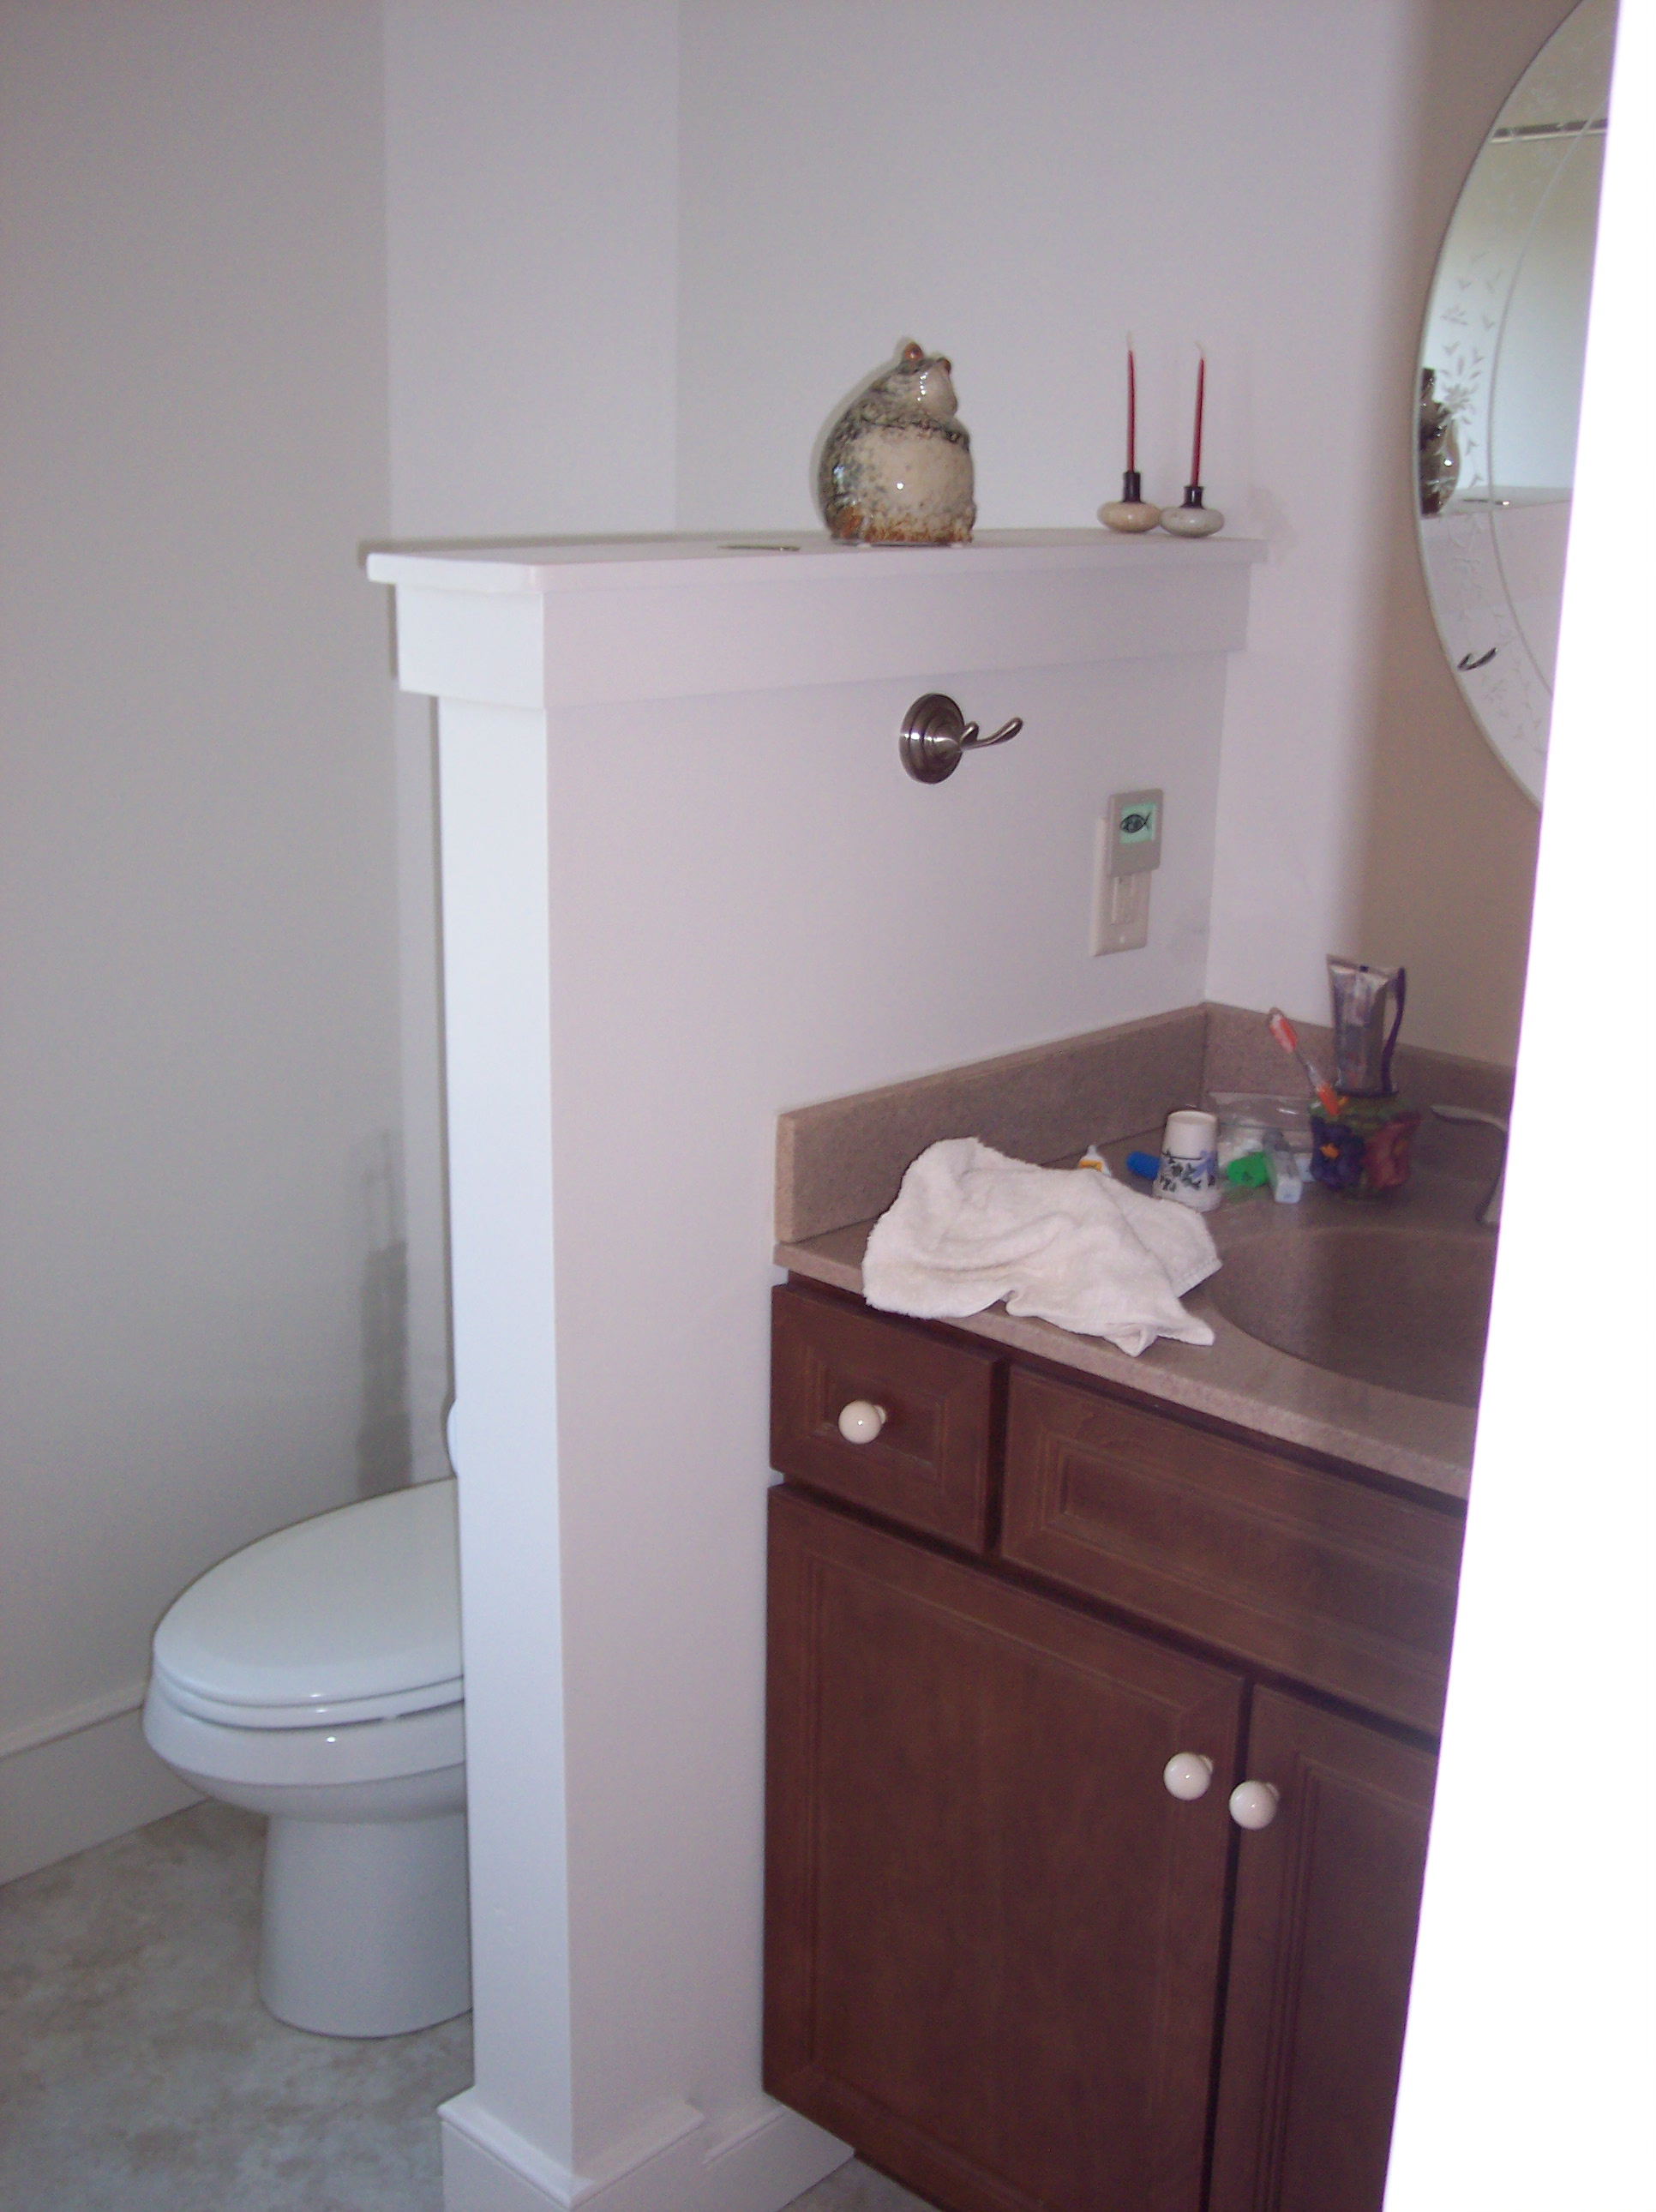 Remodeling ideas for small bathrooms lancaster pa for Small bath renovation ideas